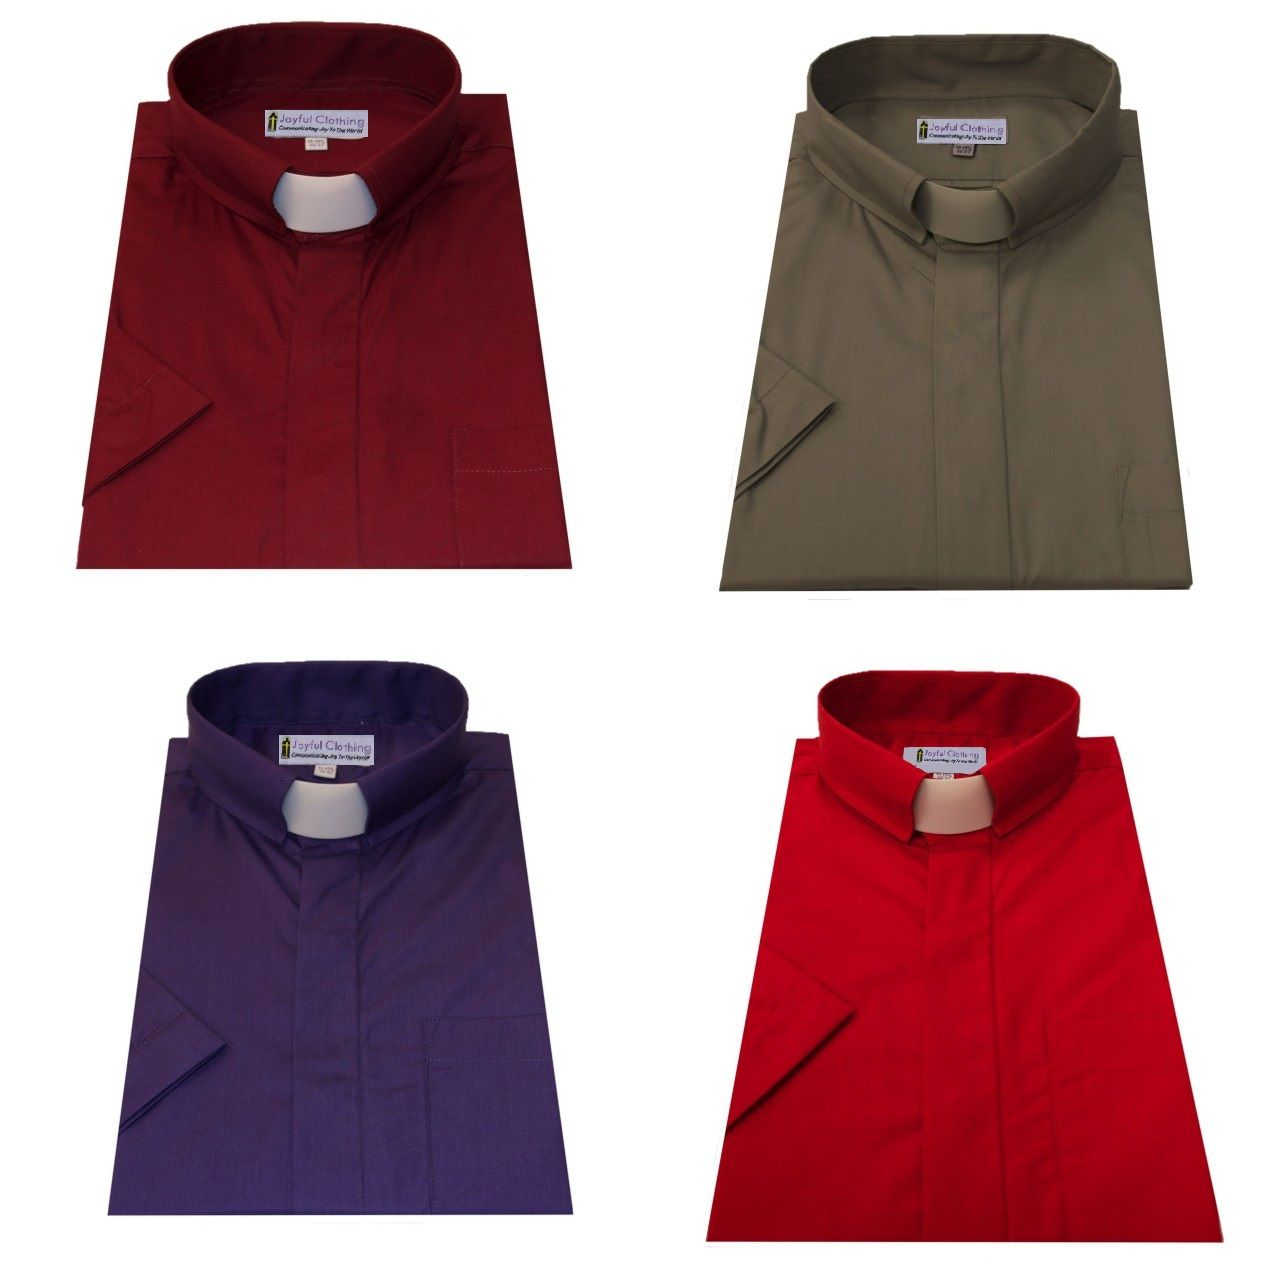 *Pack of 4* Men's Short-Sleeve Tab-Collar Clergy Shirts